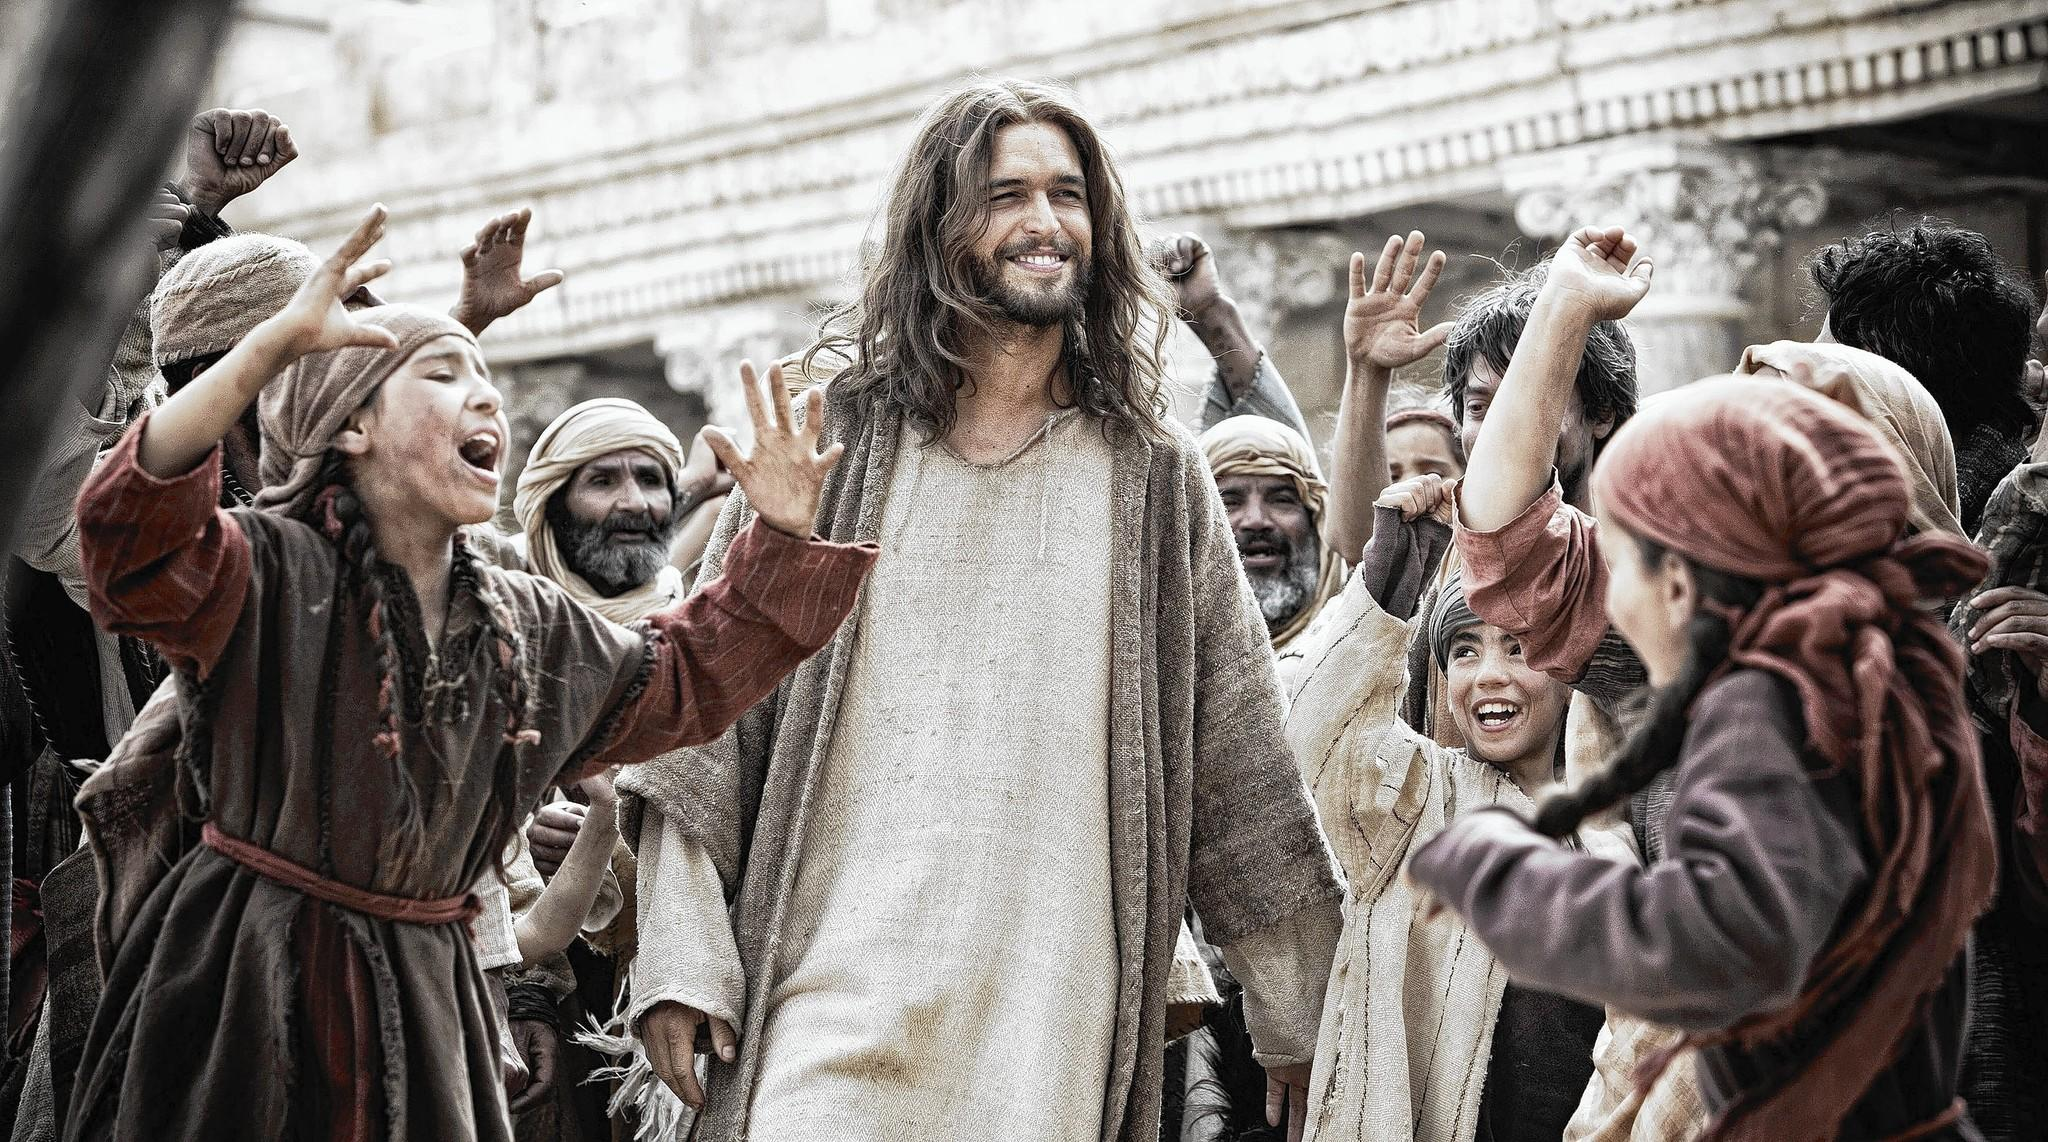 """Son of God"" starring Diogo Morgado as Jesus was adapted into a feature film from the History Channel's ""The Bible"" miniseries."